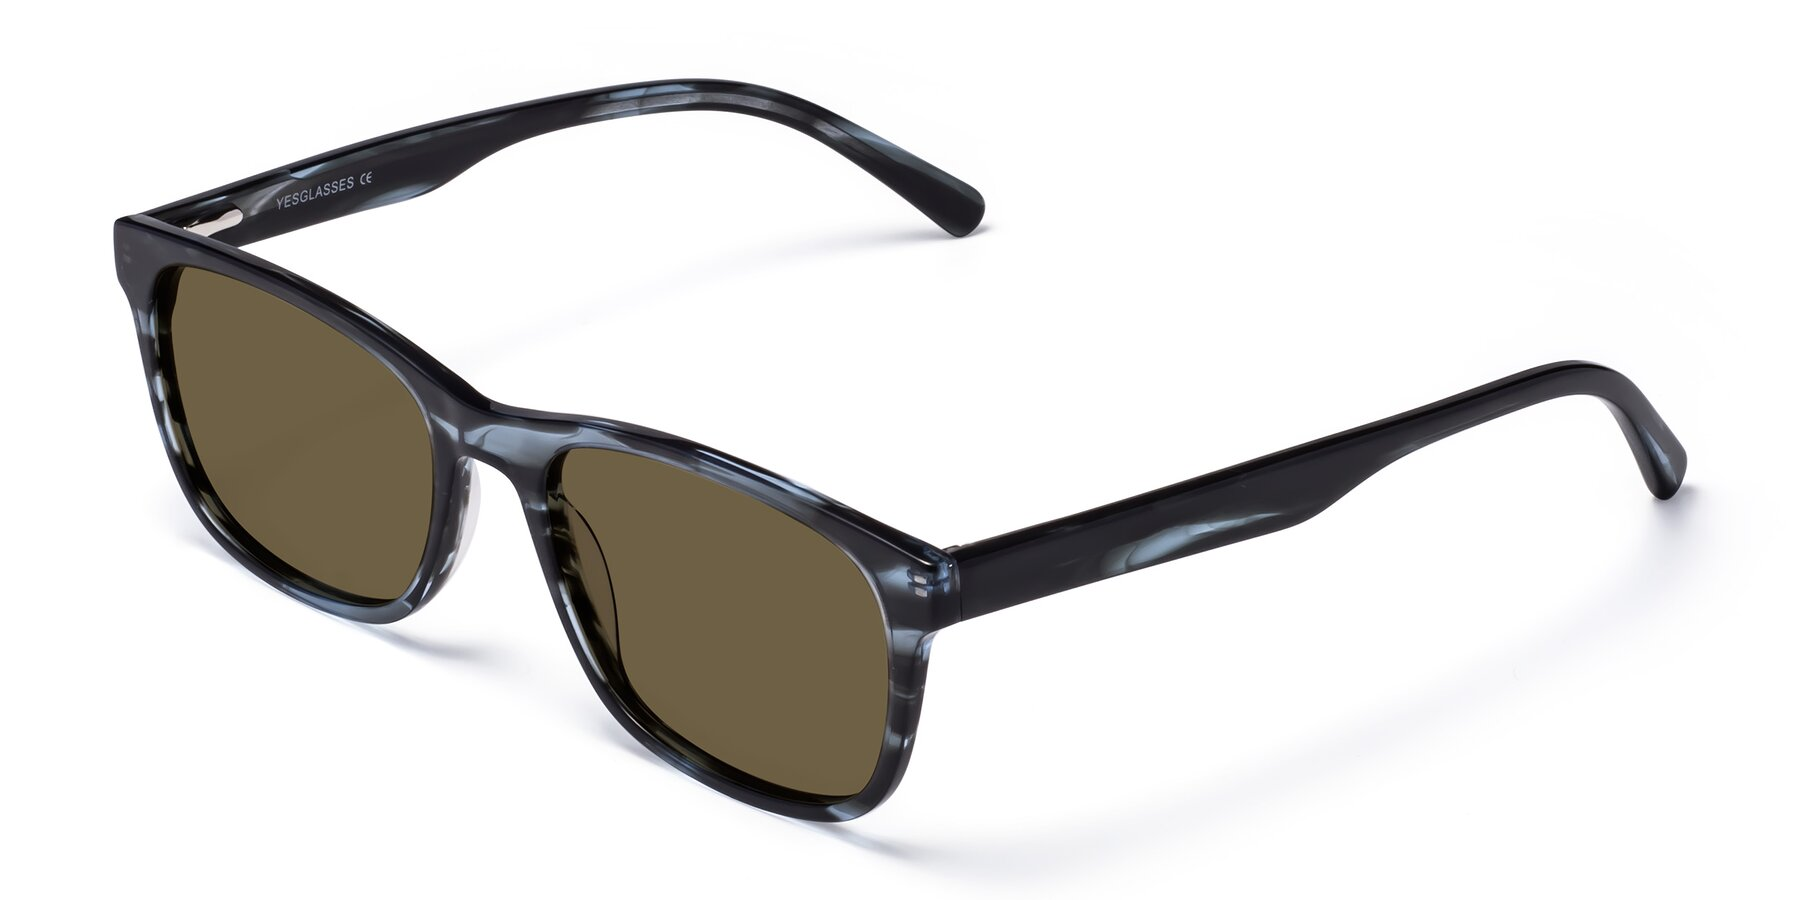 Angle of SR6035 in Blue-Tortoise with Brown Polarized Lenses